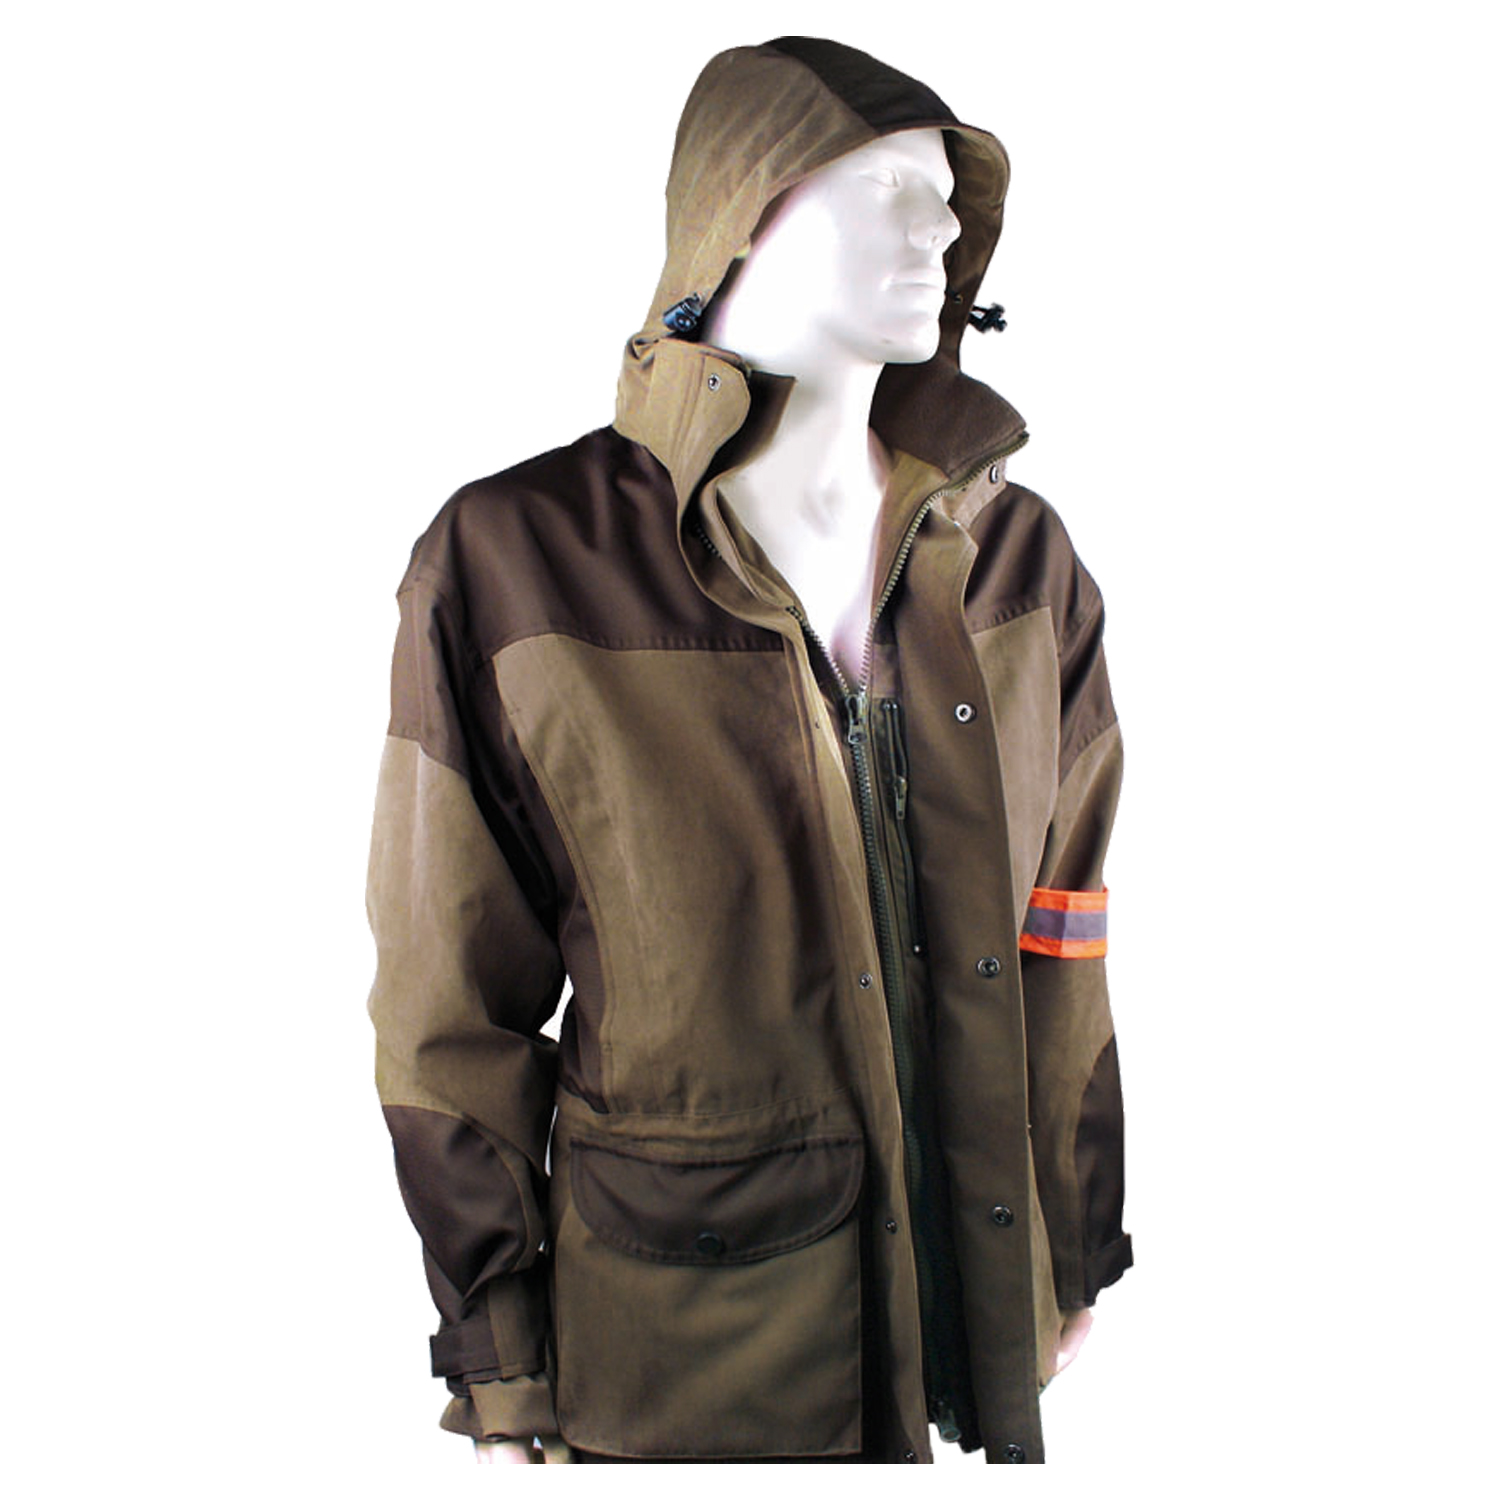 Jacket jacket microfiber reflector man hunting outdoor technical